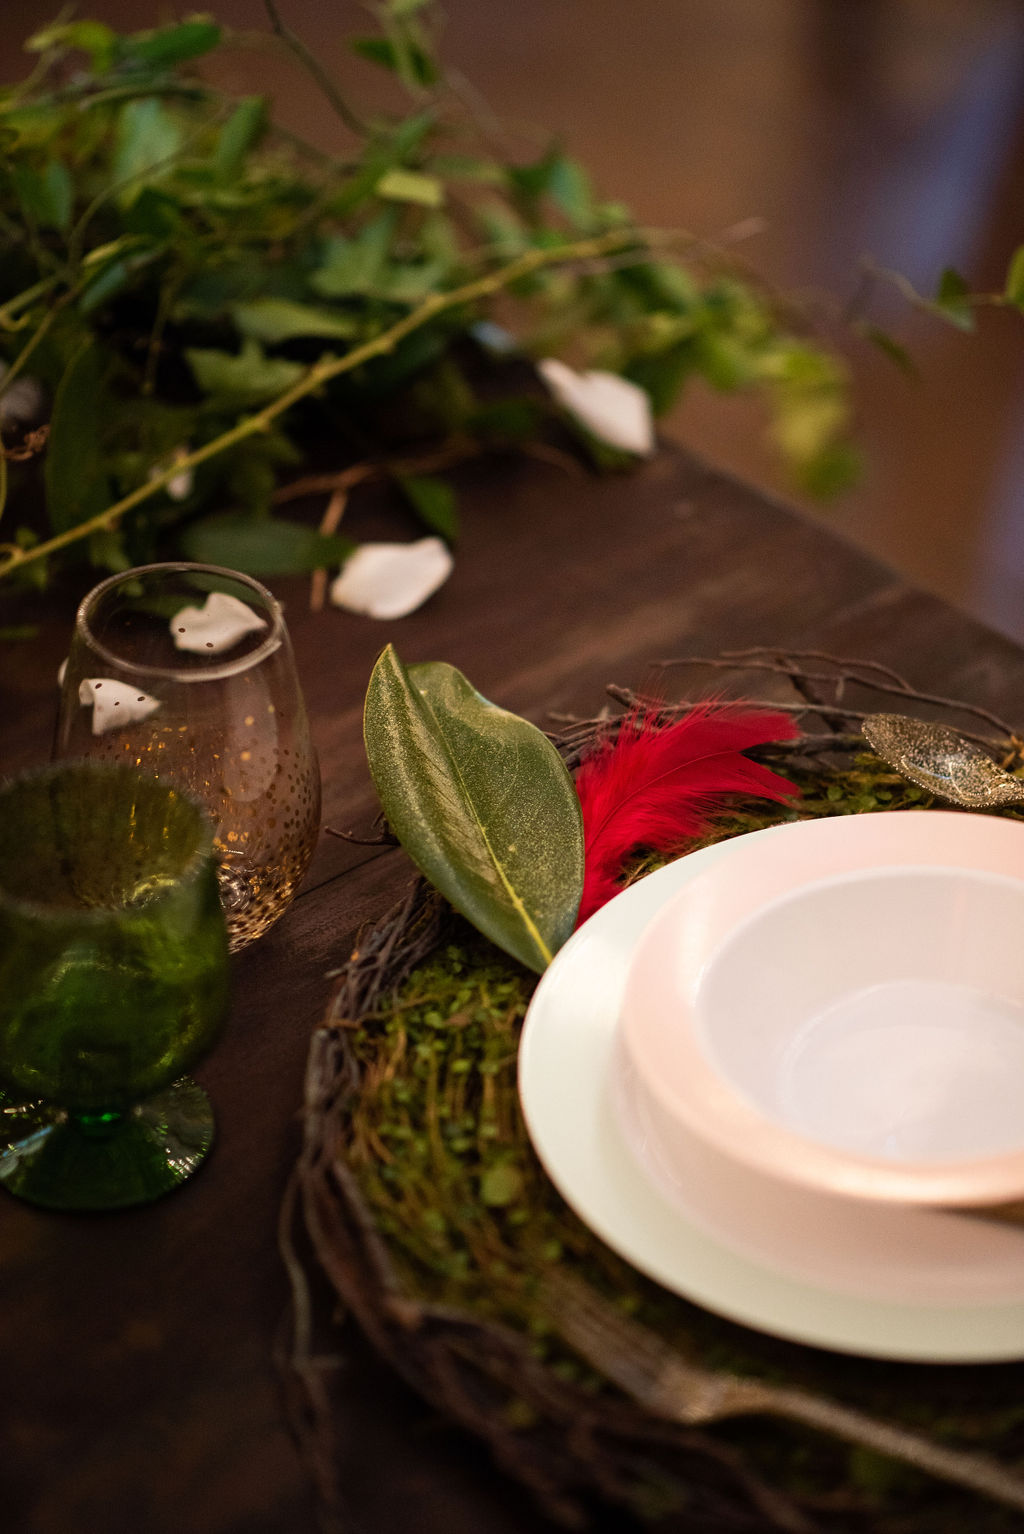 st-augustine-photographer-wedding-house-of-assembly-events-st-augustine-florida-sarah-annay62.jpg